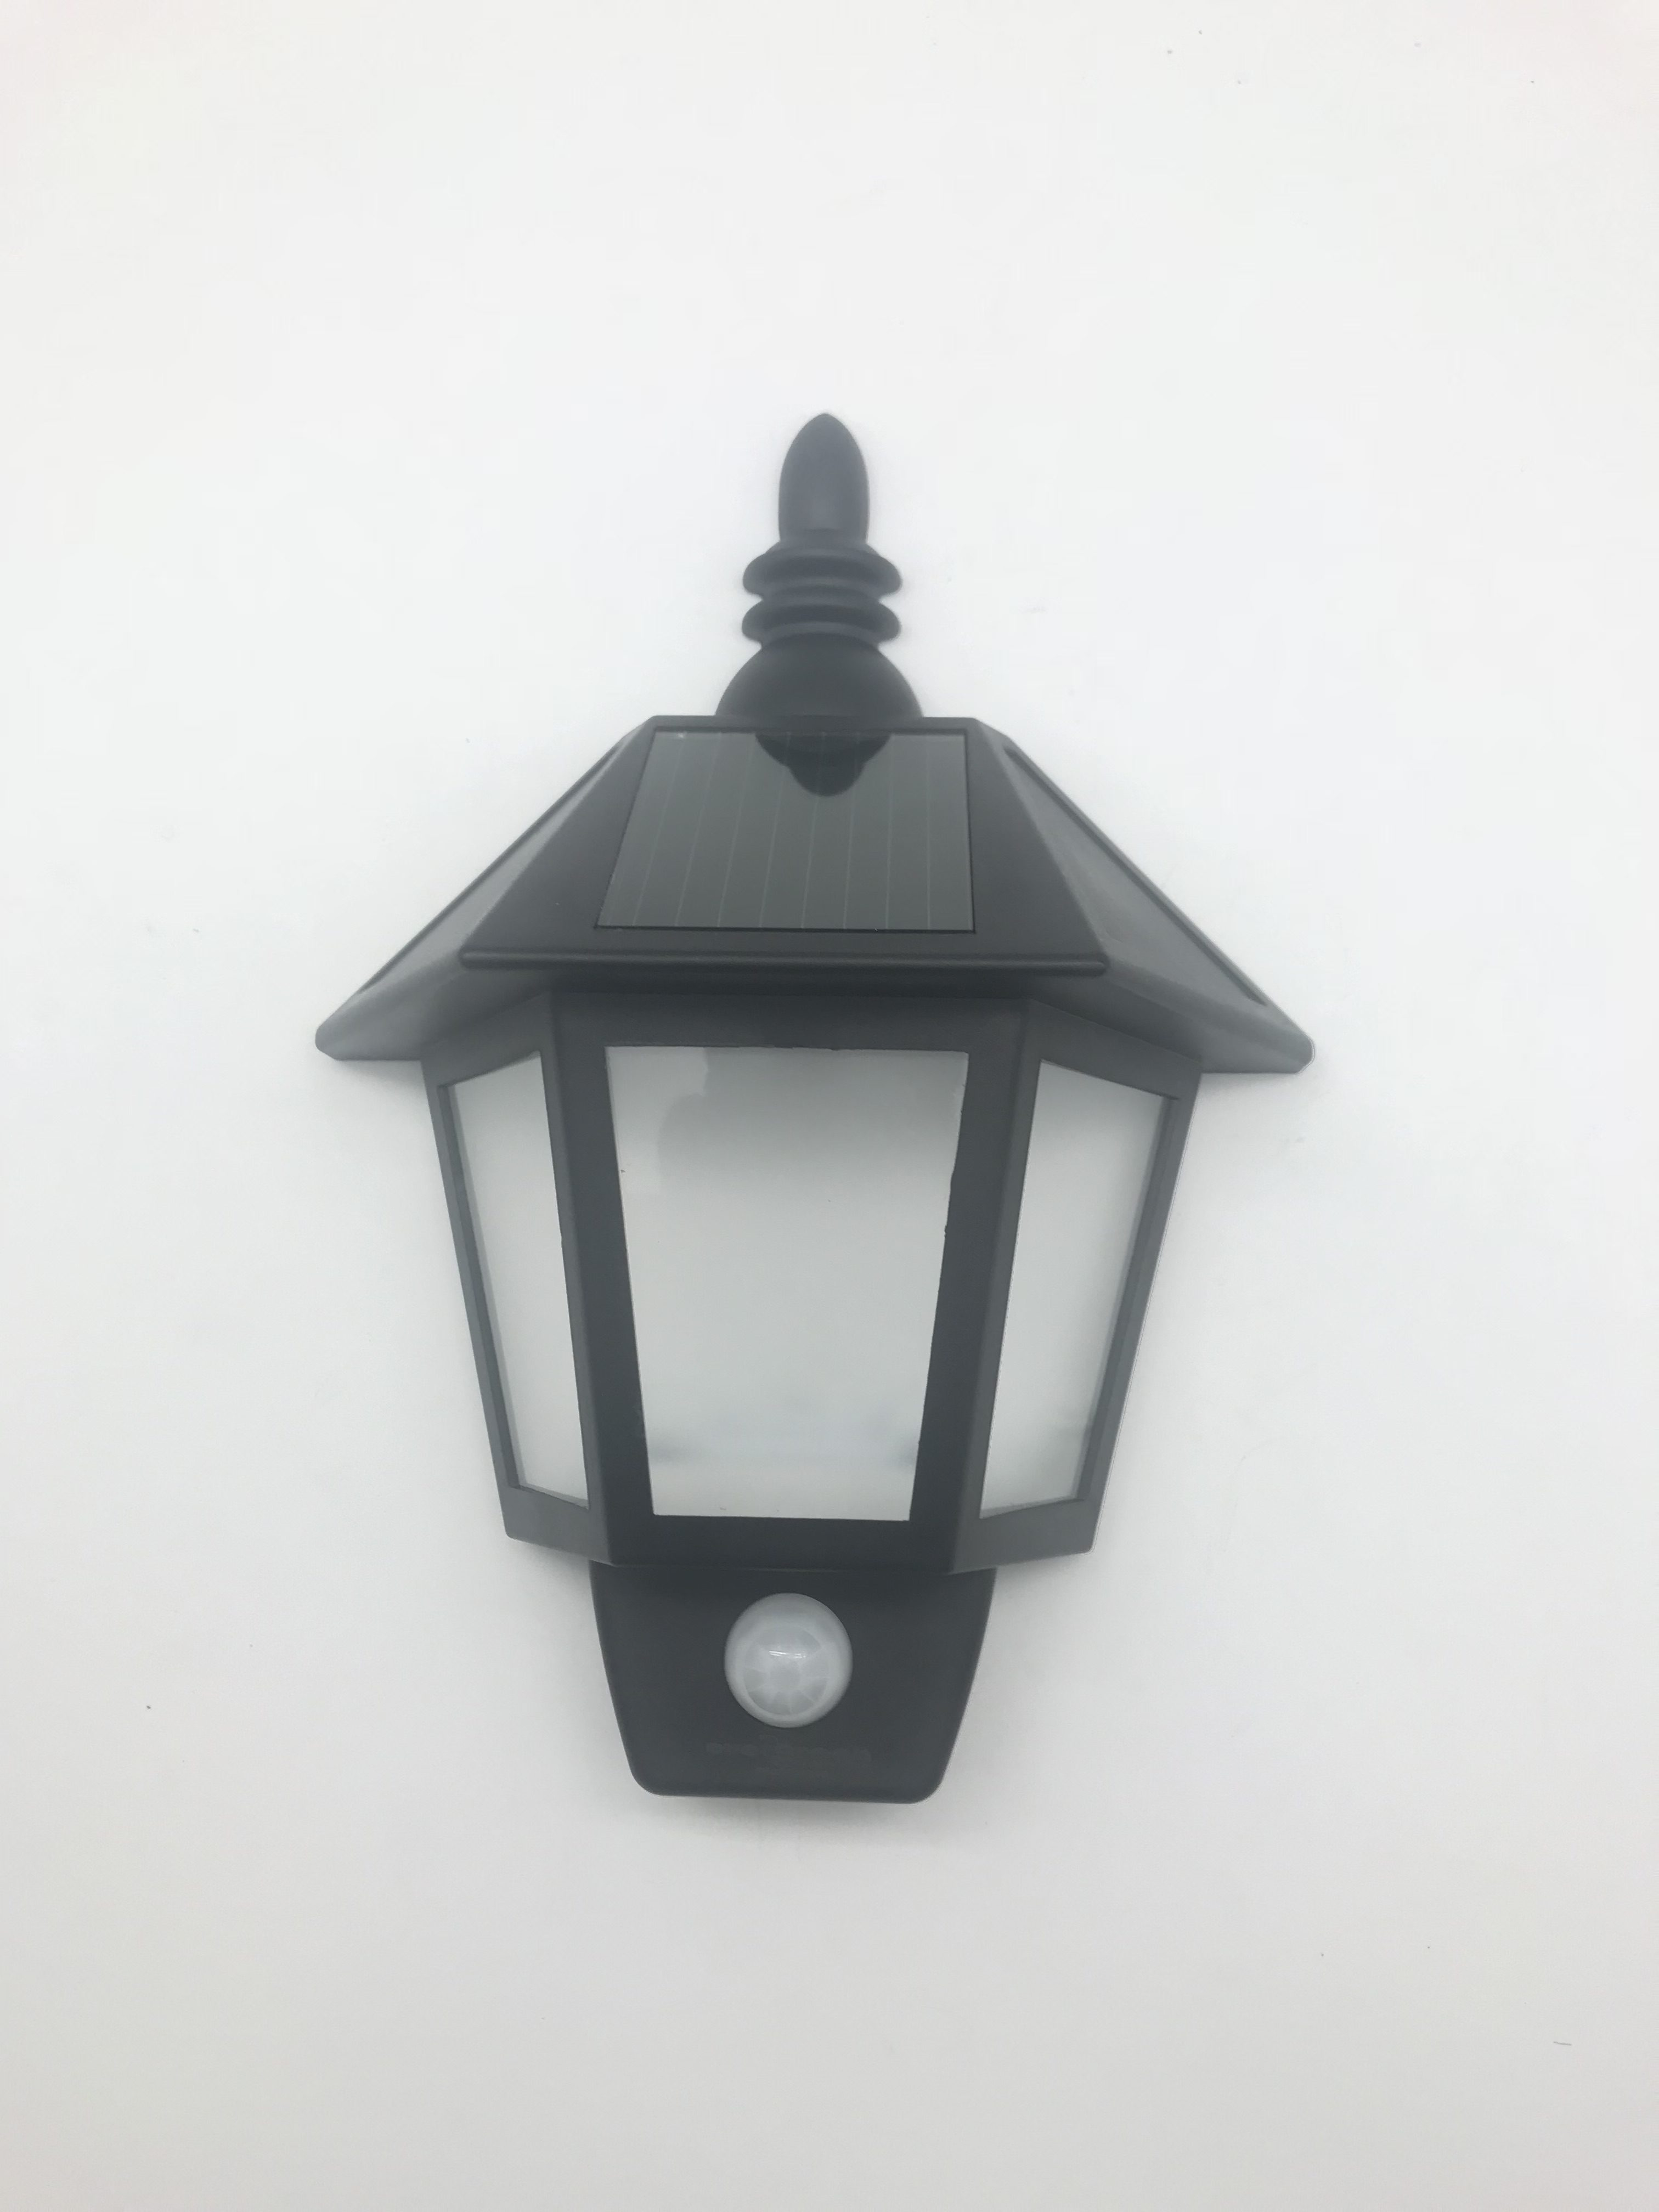 Evergreen Lighting Malaysia Delivering Illumination At An Circuit Board Wall Lamp Solar Led 2w Dl House Design Black Body With Sensor Pc Asc 007